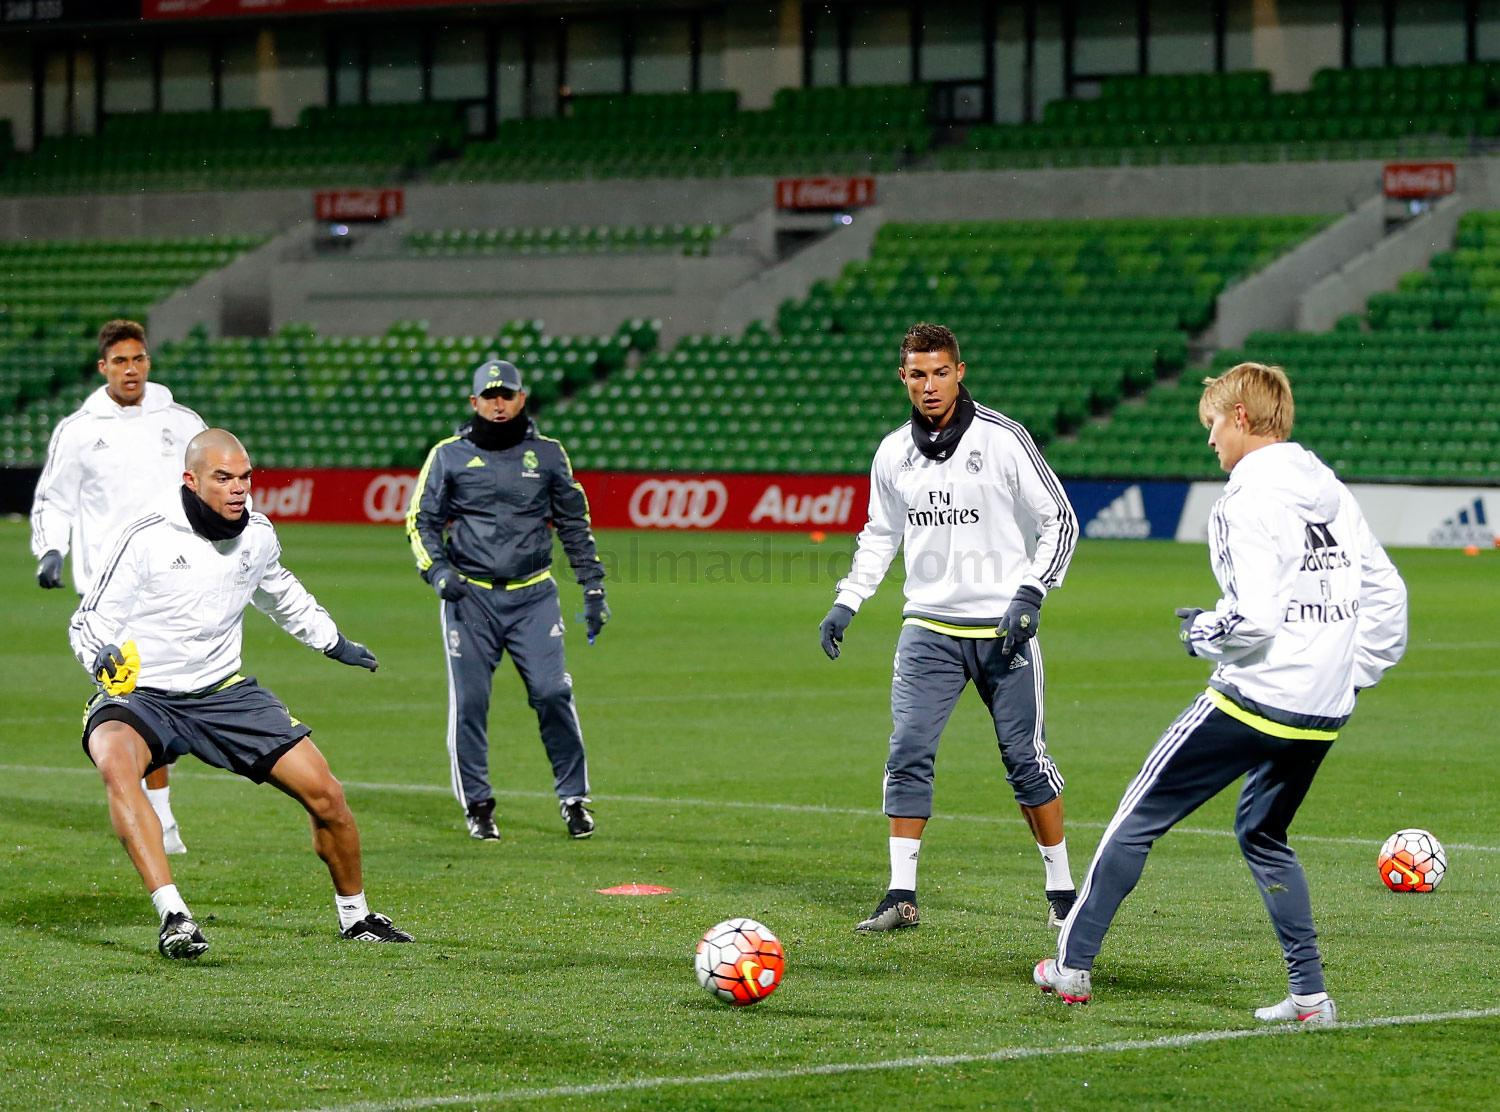 Real Madrid - Entrenamiento del Real Madrid - 14-07-2015